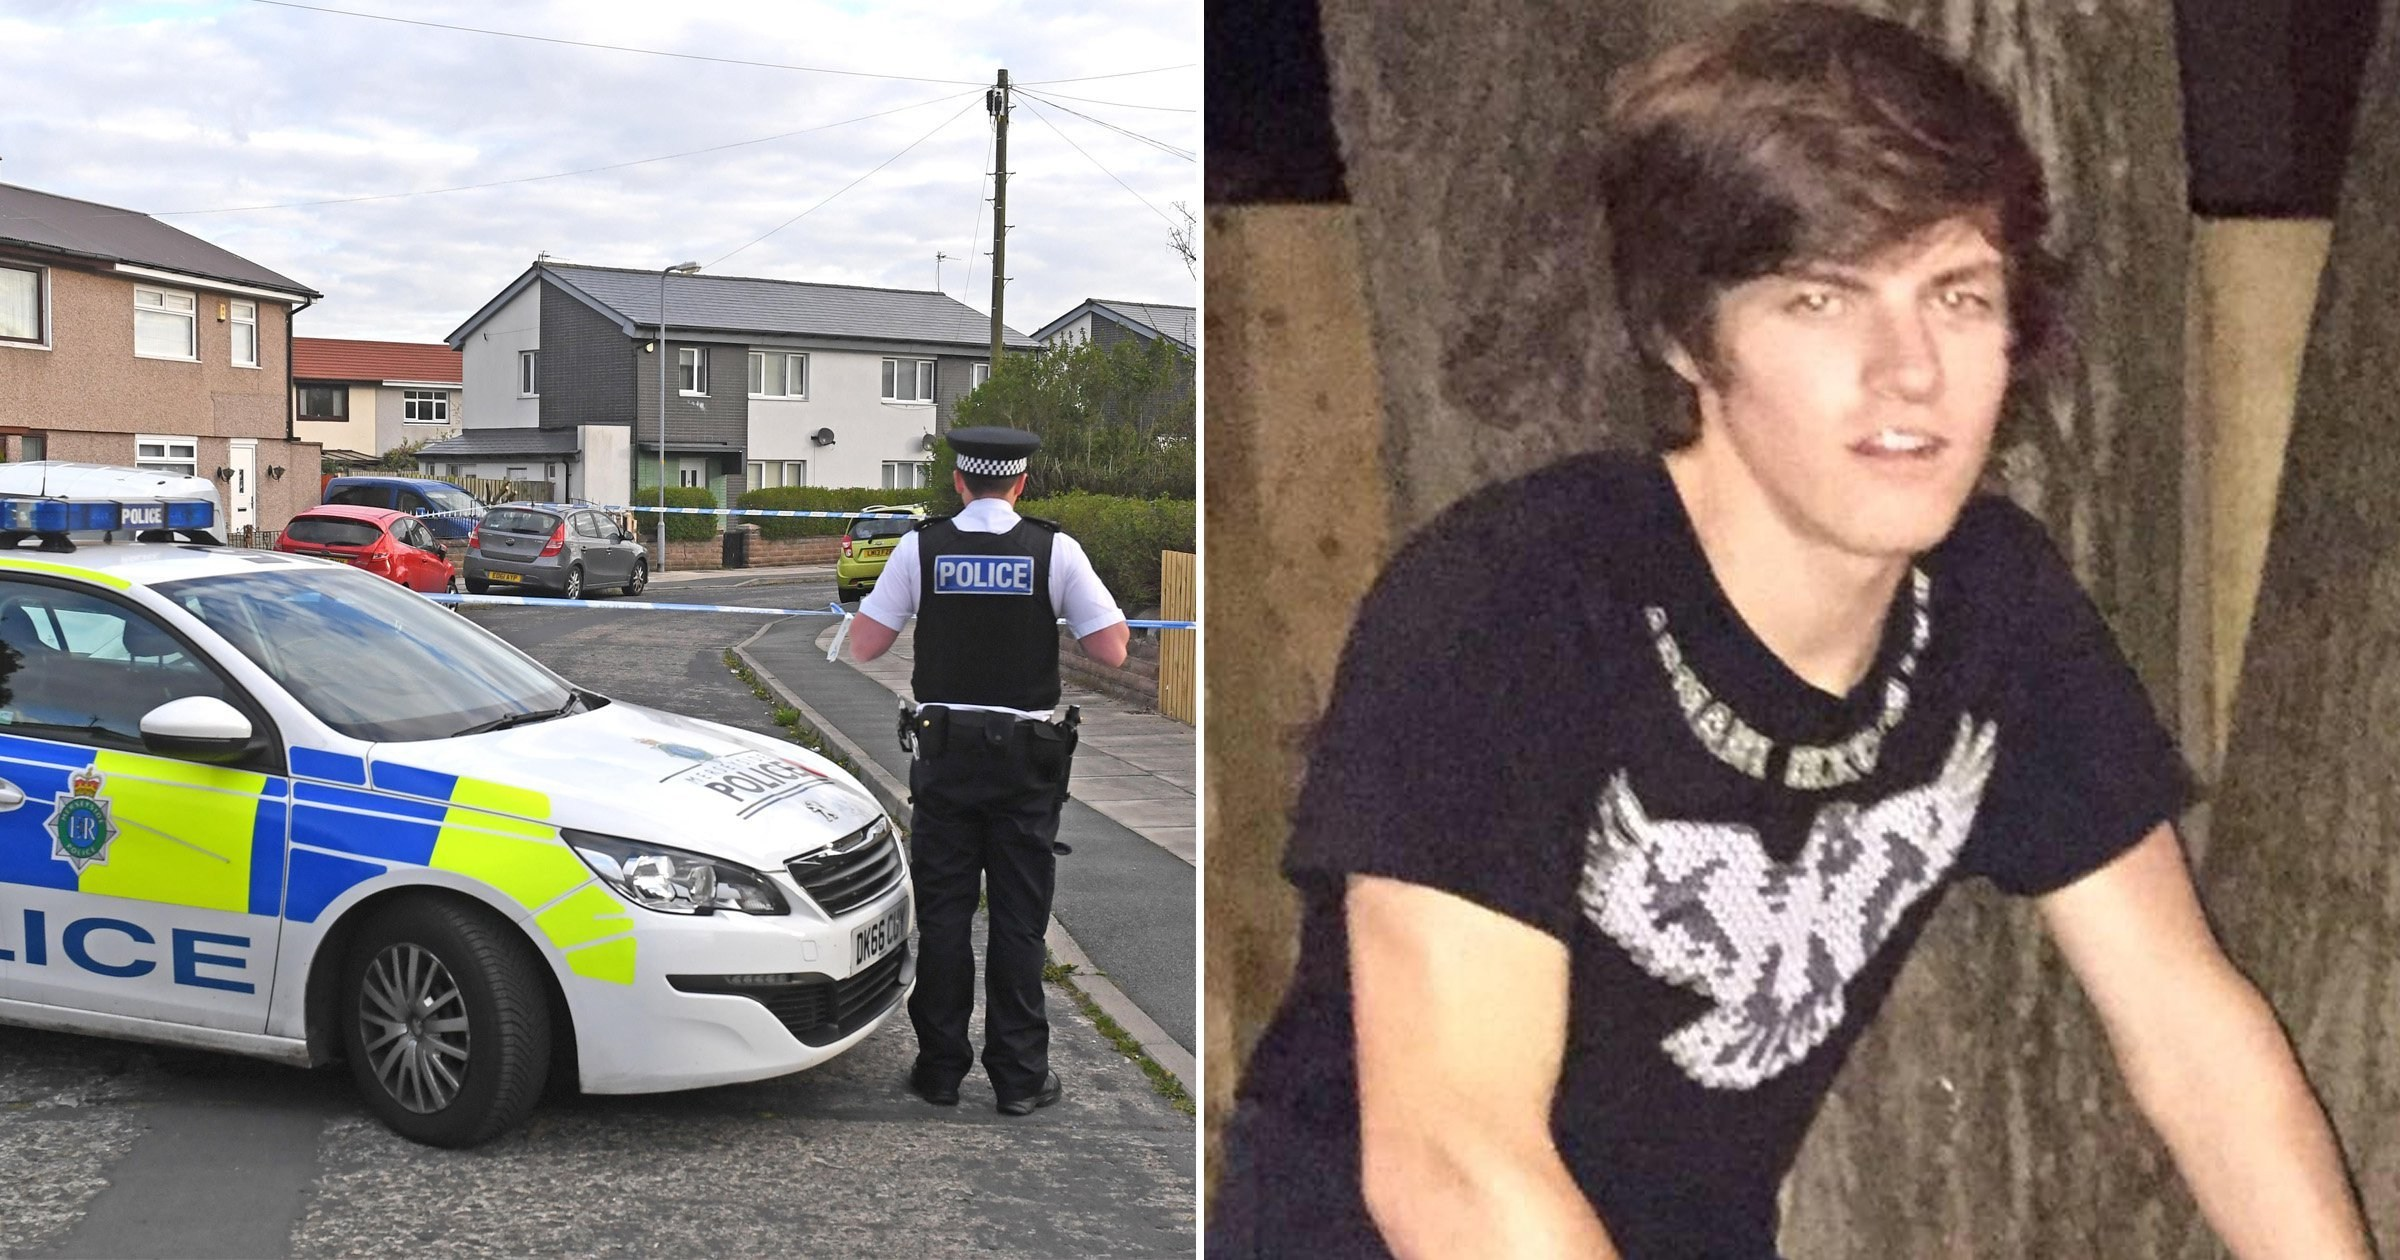 'Caring' son, 20, shot dead through kitchen window